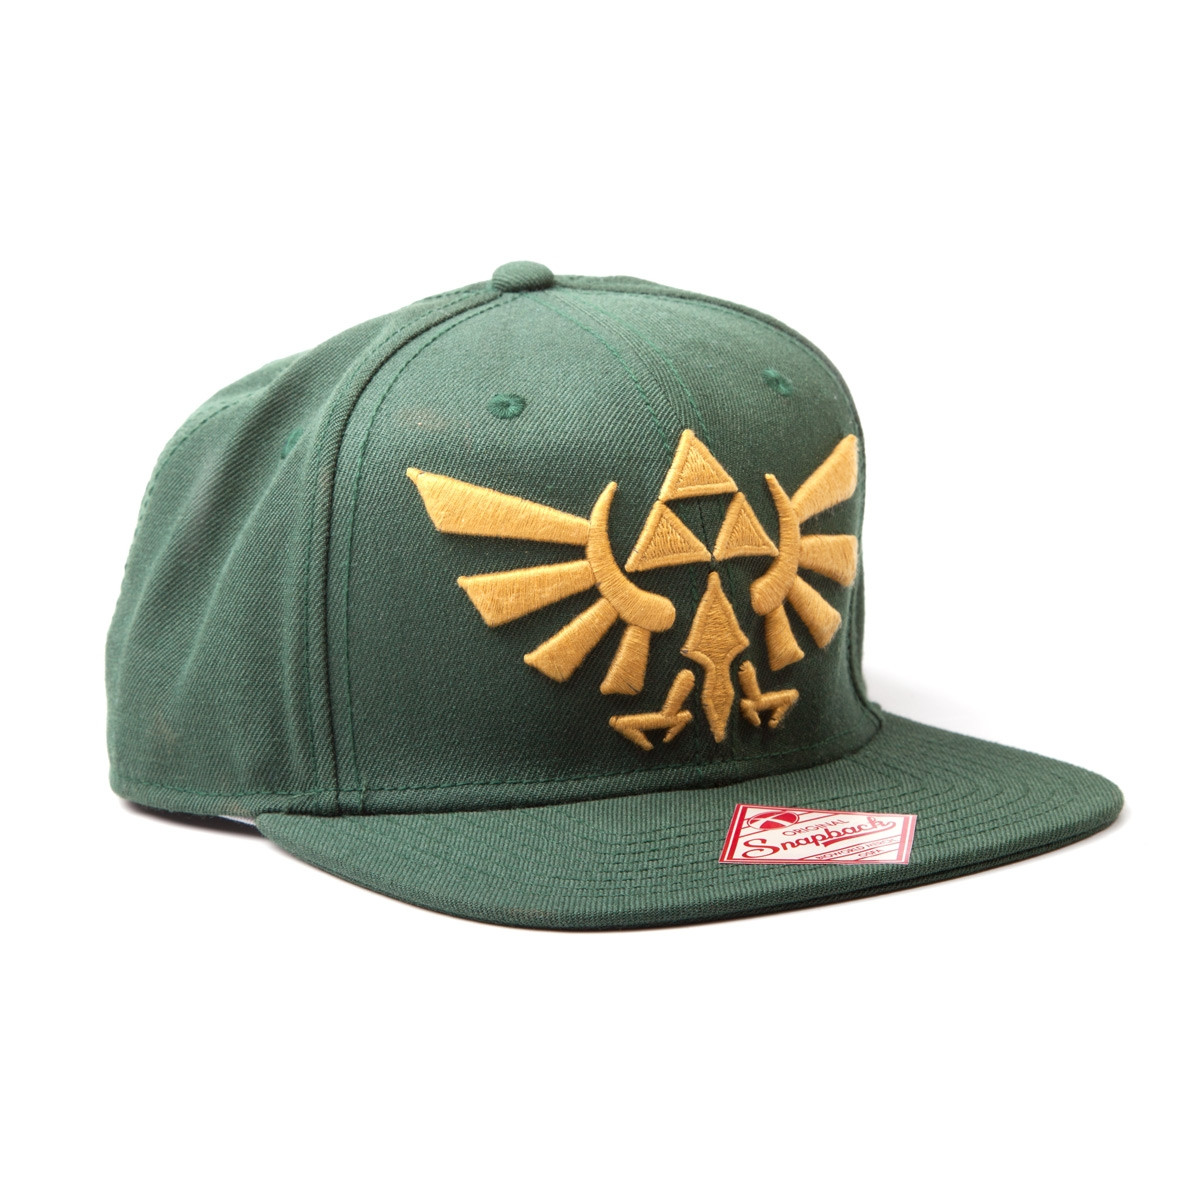 Alternative photo: Zelda Green Snapback Cap